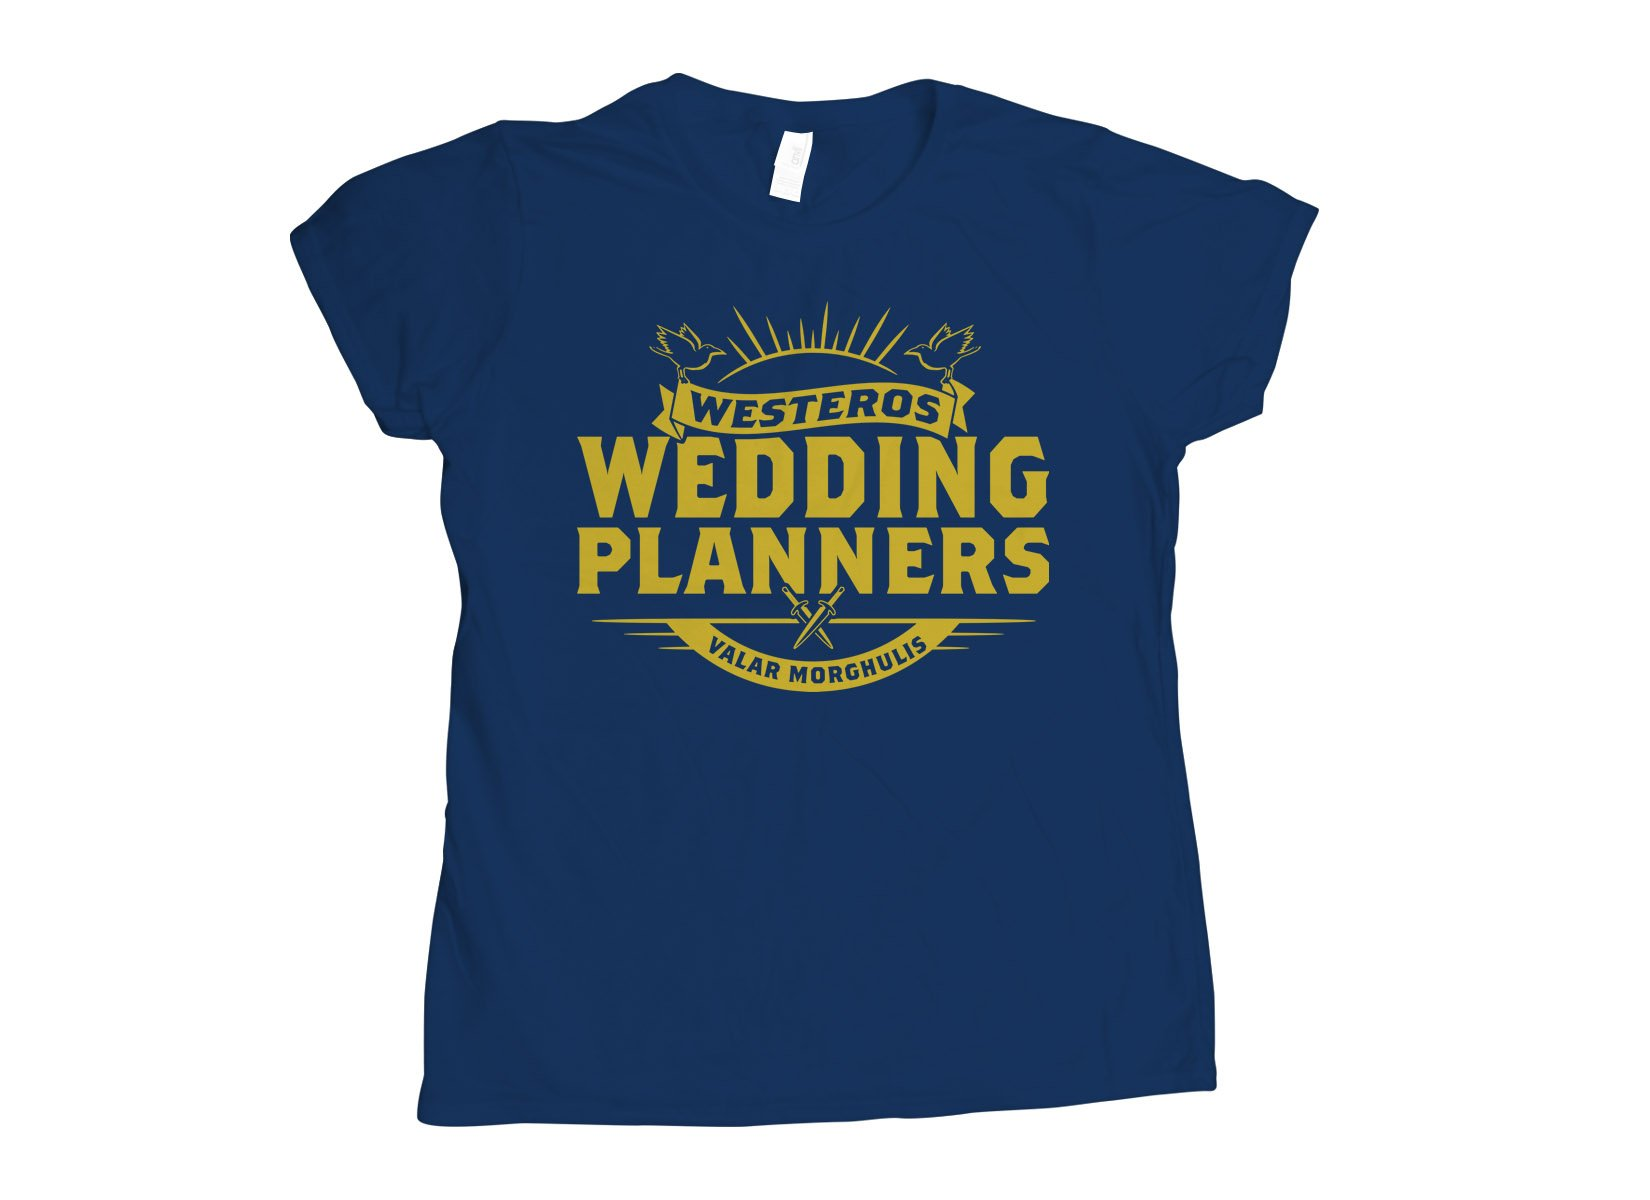 Westeros Wedding Planners on Womens T-Shirt